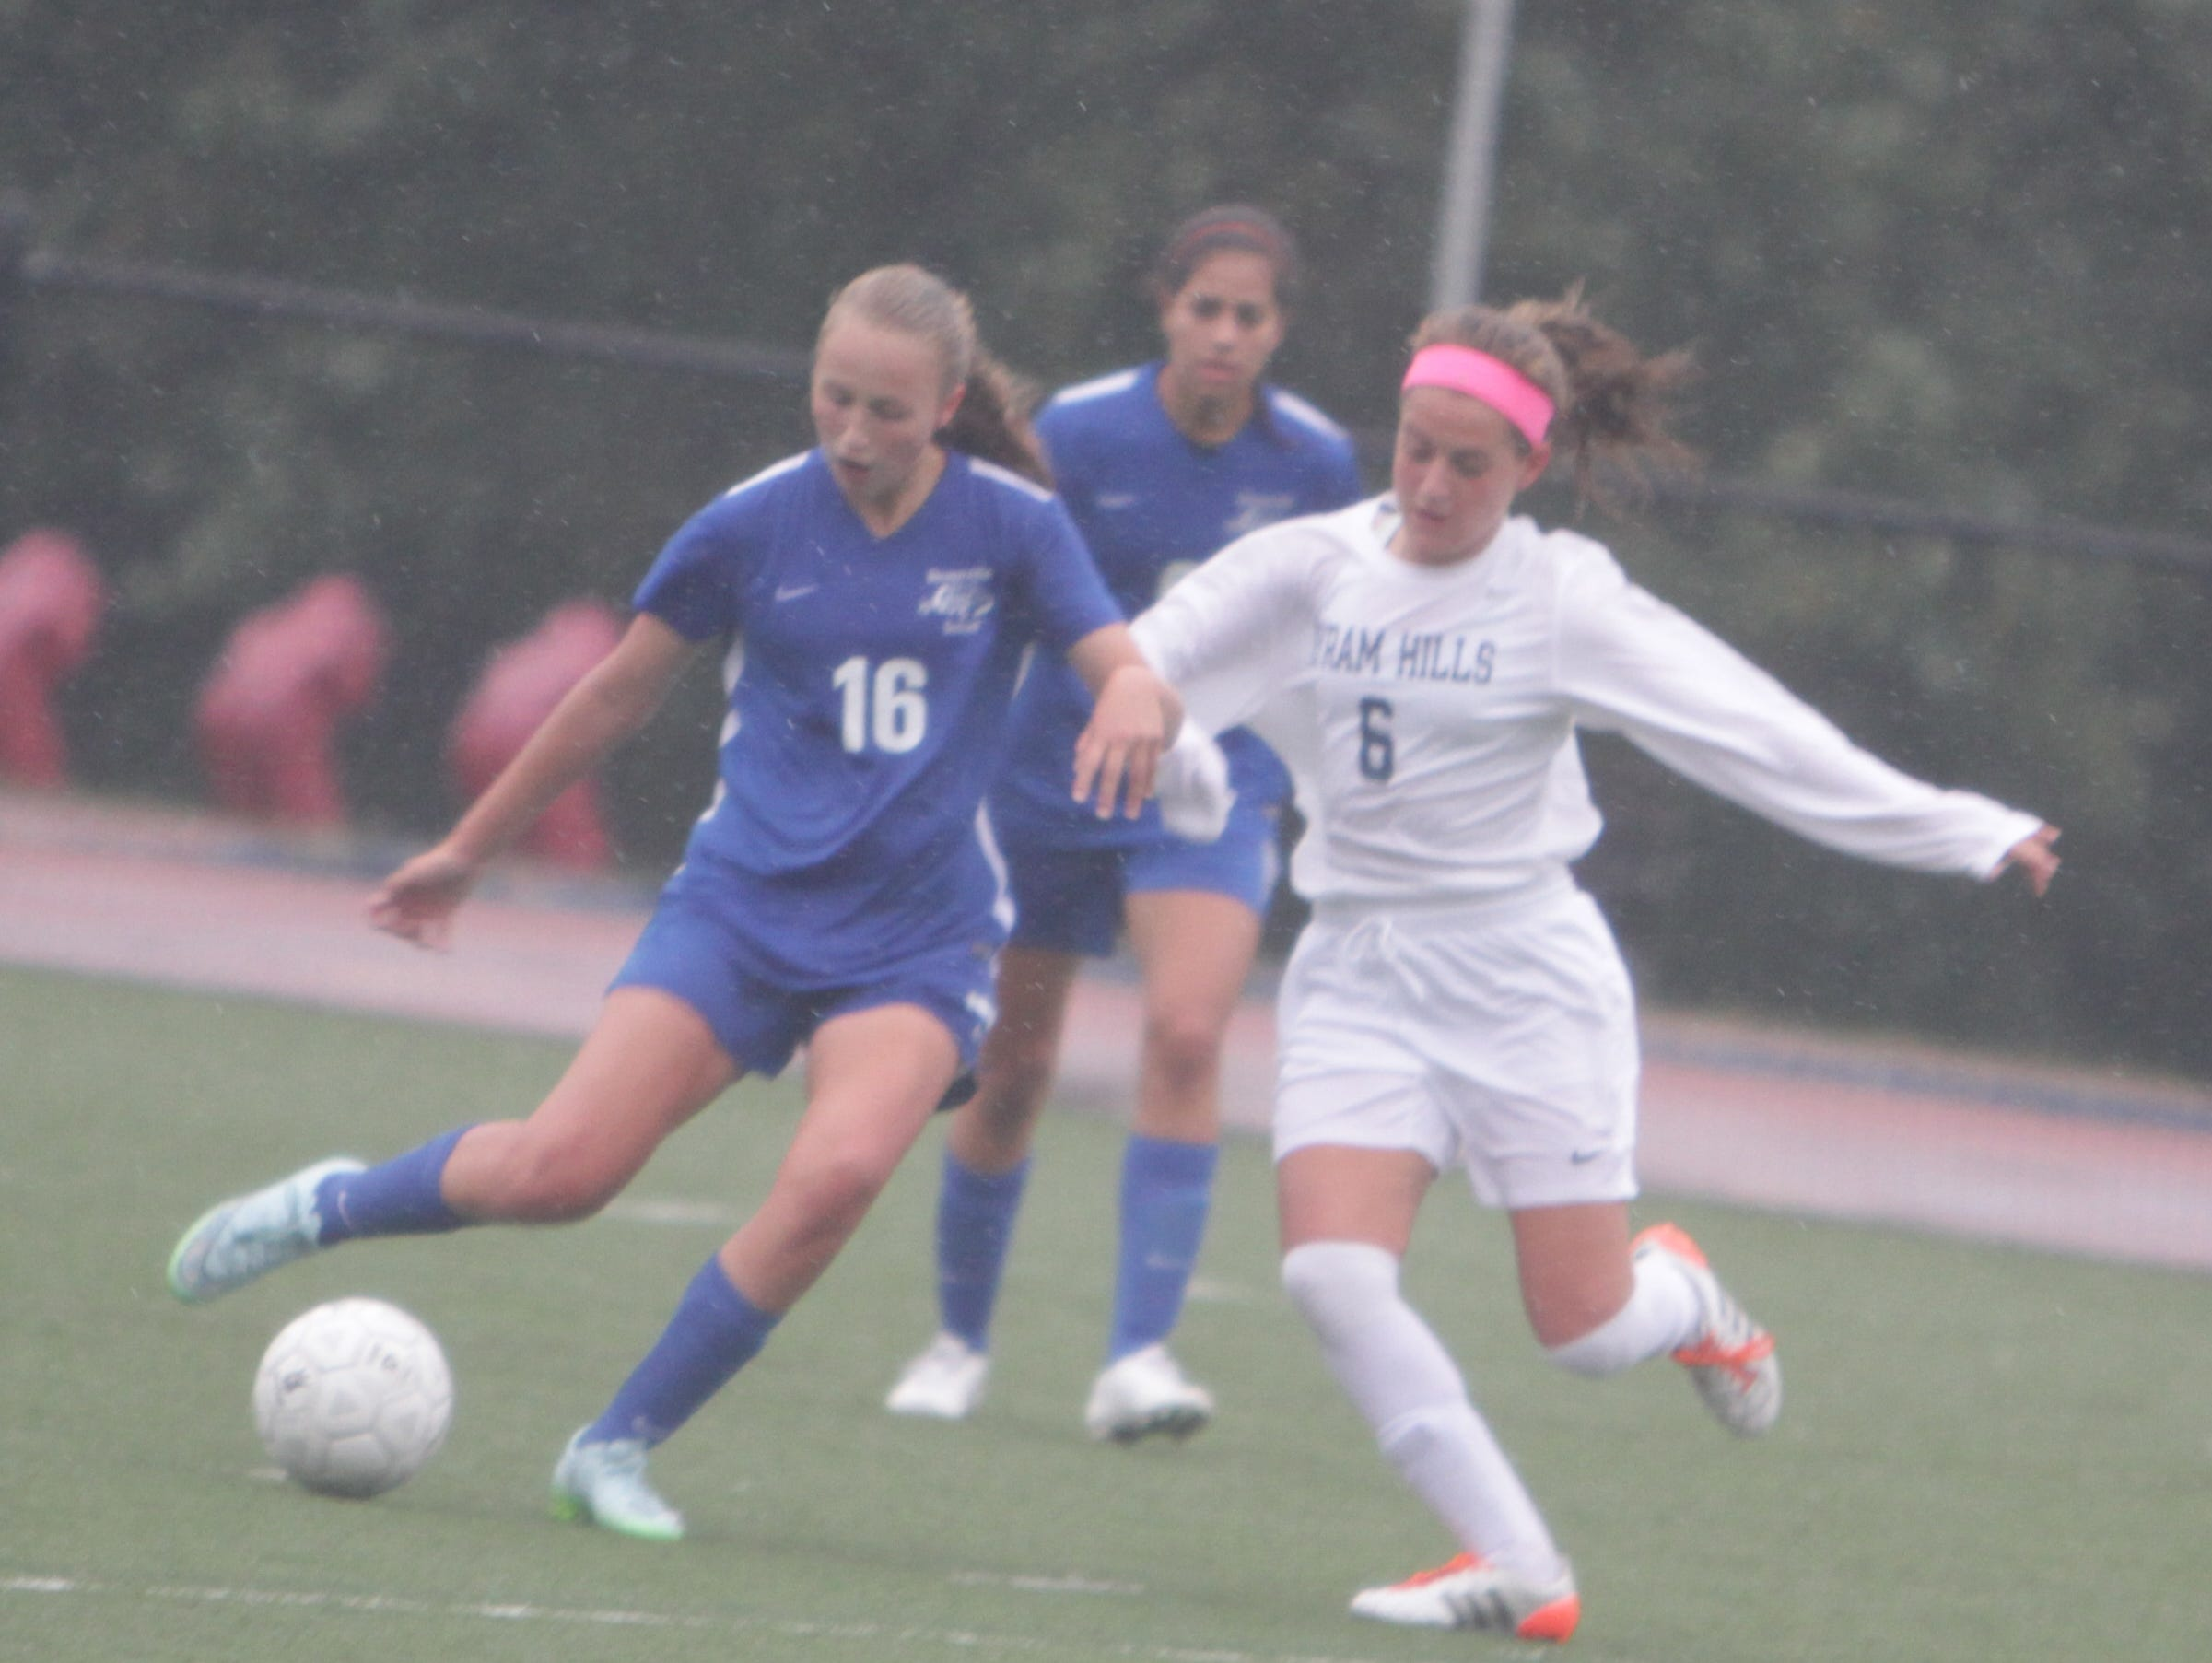 Bronxville's Rachel Peacock (16), pictured here in a game against Byram Hills on October 2nd, 2015, had two goals and an assist in the team's 3-2 win against Ardsley on Thursday, October 16th, 2015.